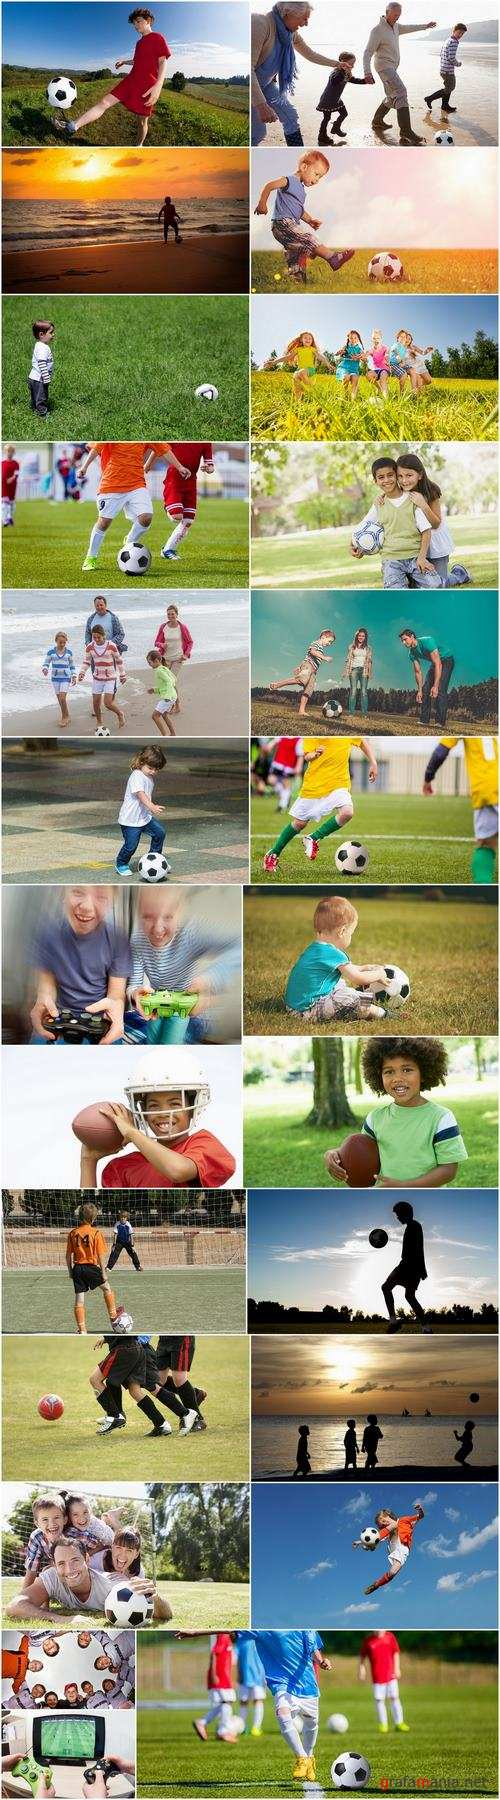 Child adolescent children playing football ball soccer field 25 HQ Jpeg